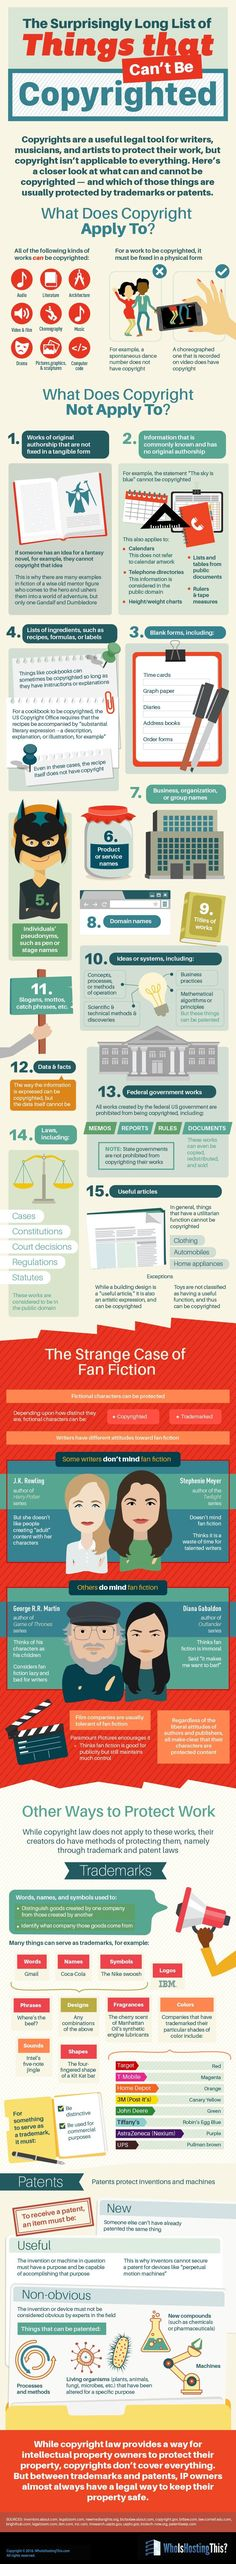 The Long List of Things that Can't Be Copyrighted #Infographic #Internet